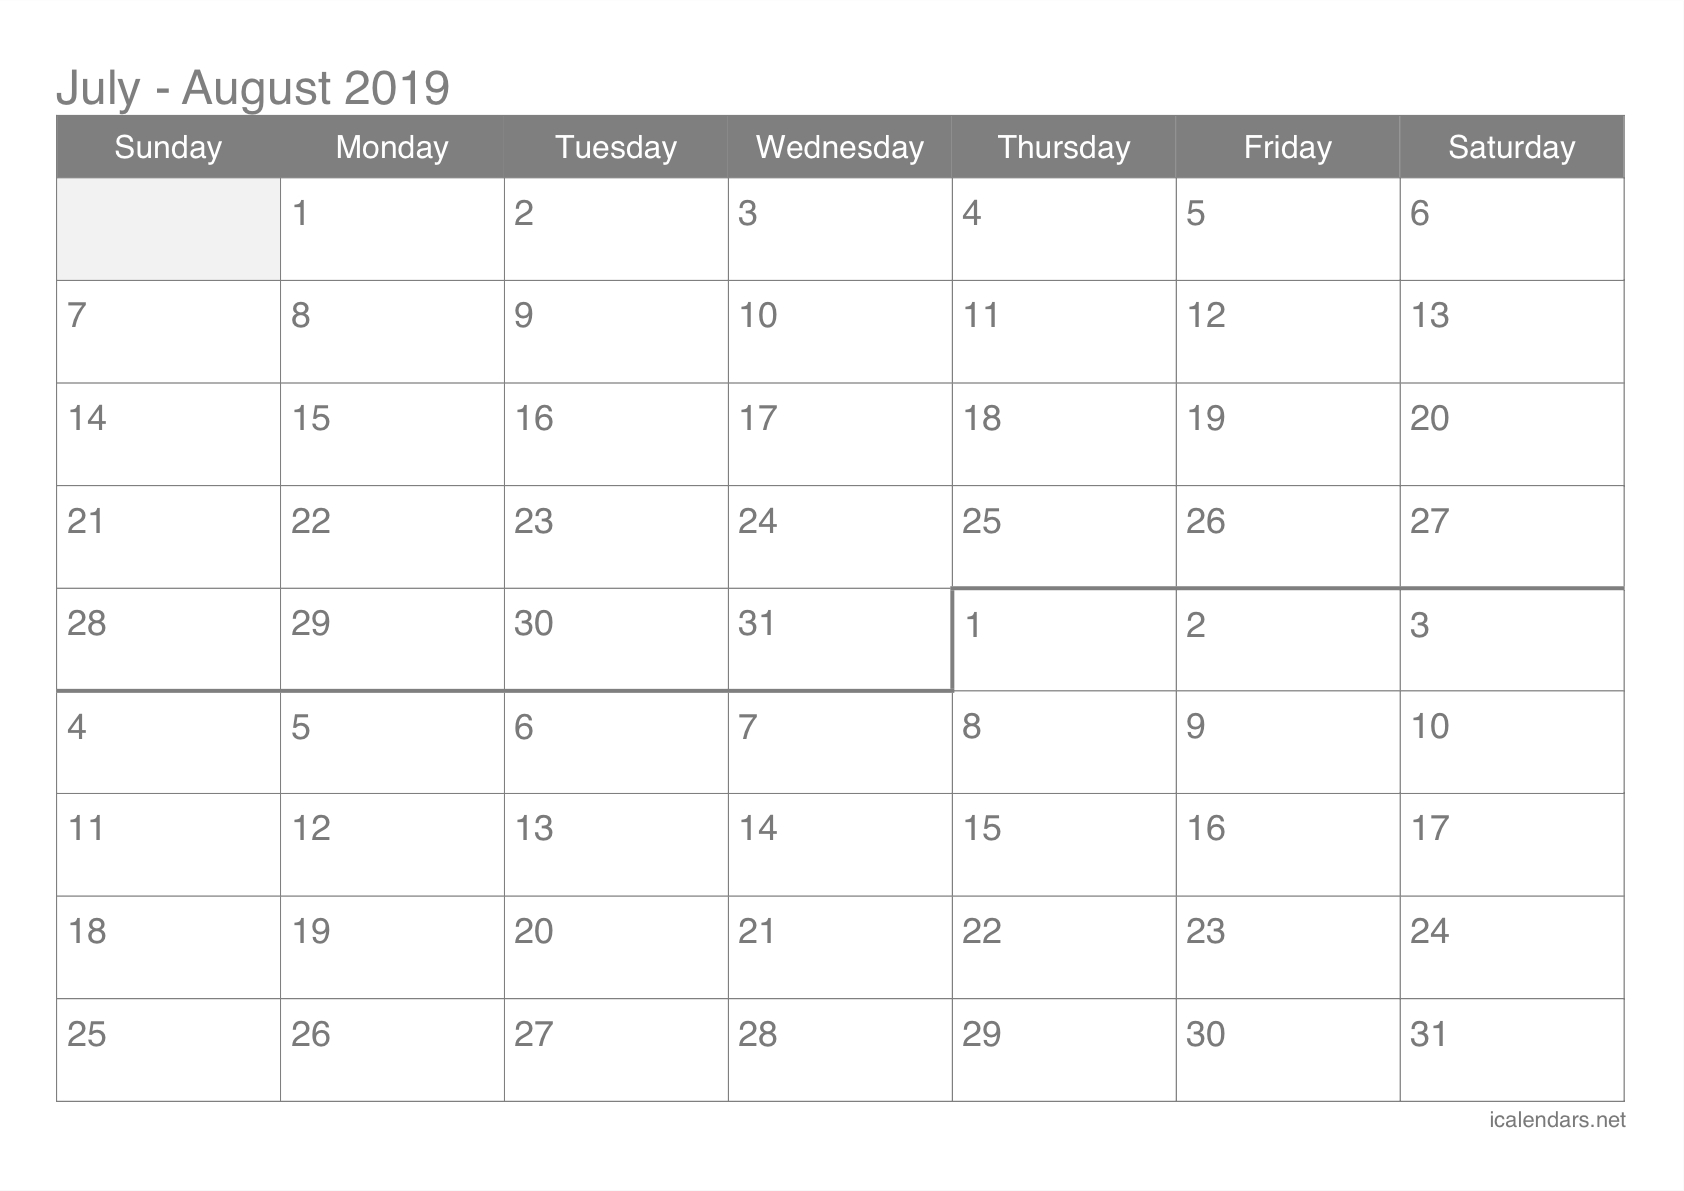 July And August 2019 Printable Calendar - Icalendars-Fill In The Blank July 2919 Calendar